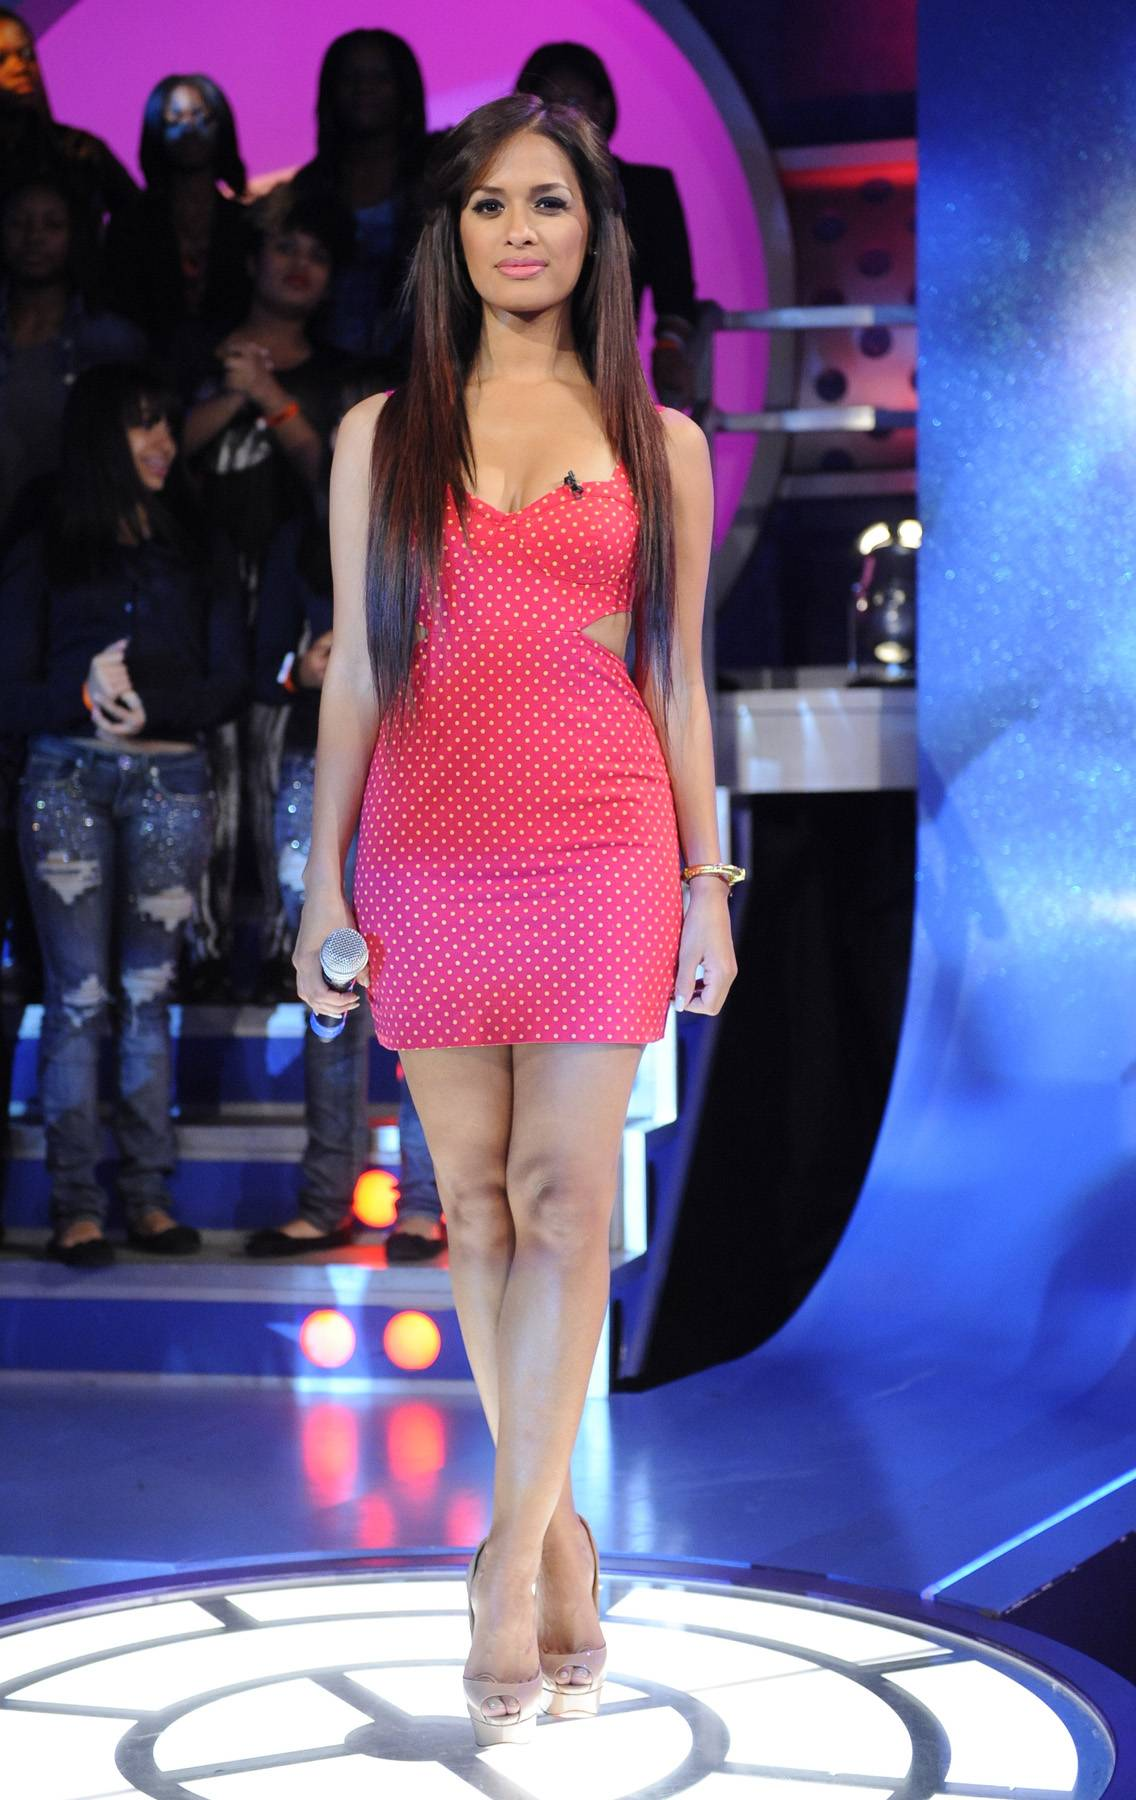 Spotted Pink - With straight hair and a bright pink polka-dotted dress coupled with nude shoes, Rocsi wins again.(Photo: John Ricard/BET)